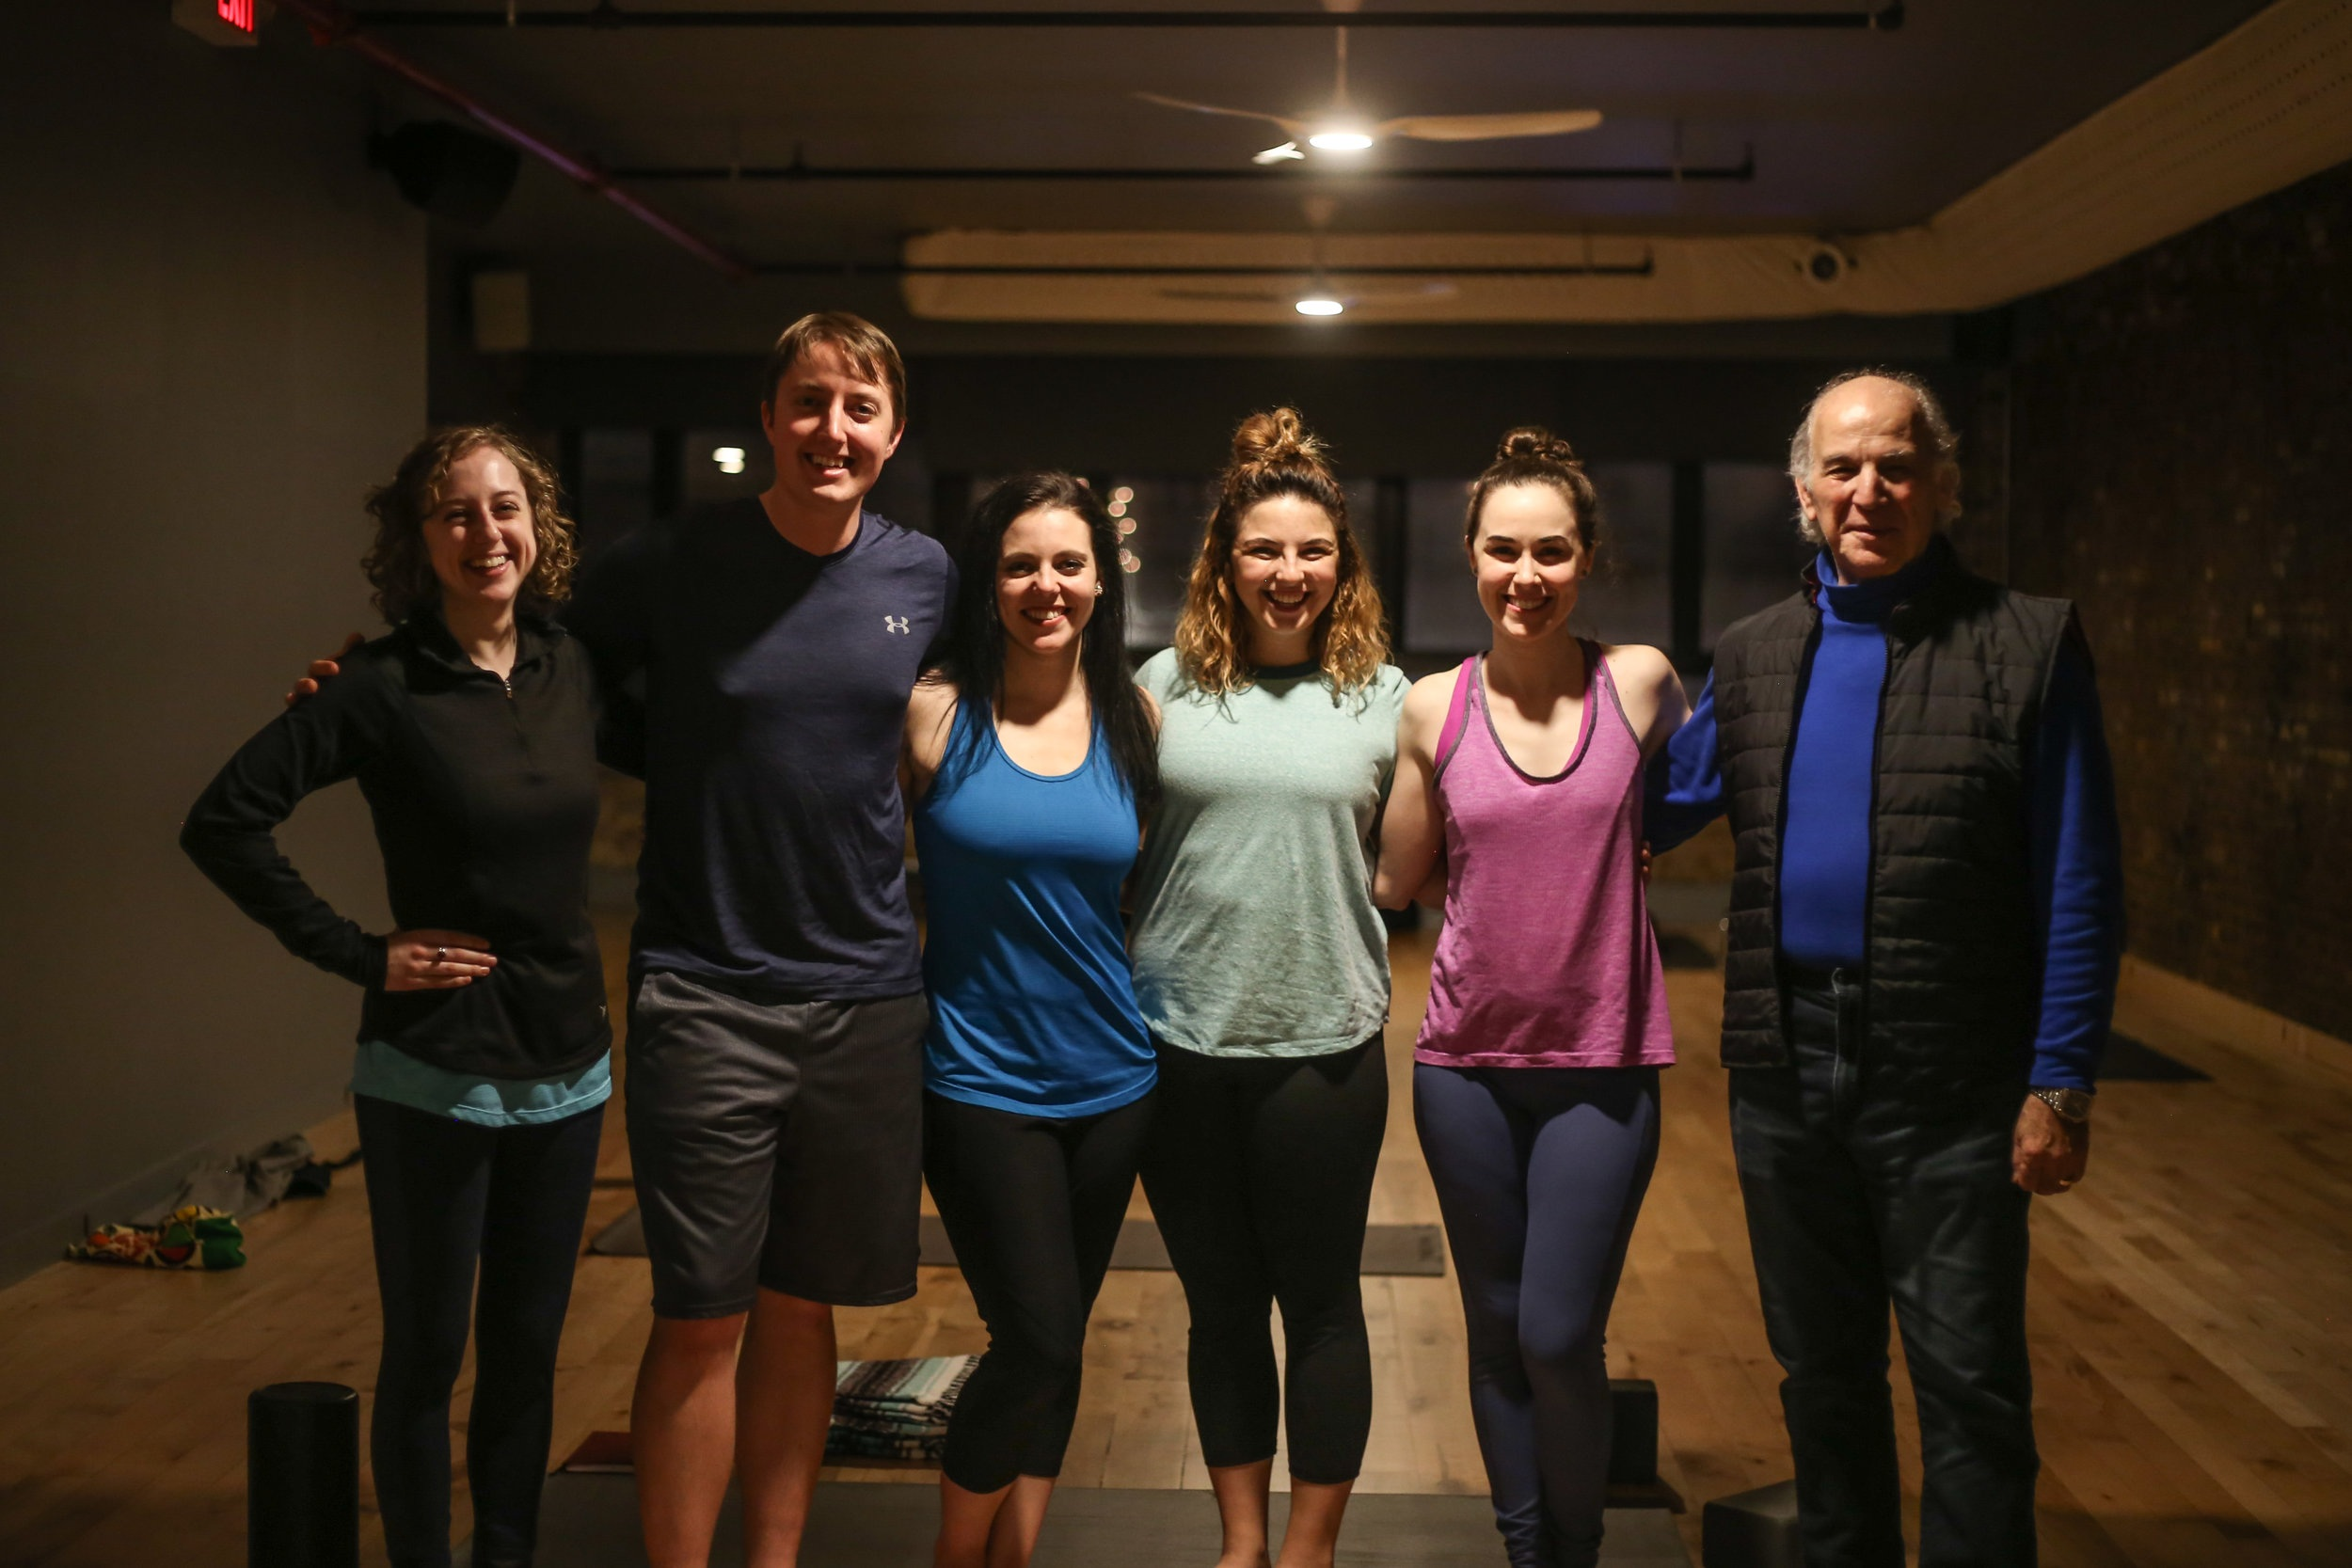 Megan with cast and crew of   Um..Om.   From left to right: playwright Meghan Crosby, actors Daniel Kirby, Jess Rawls, Lily Zahn, Megan Greener, & director Joseph Capone (Photo by Marc Franklin)